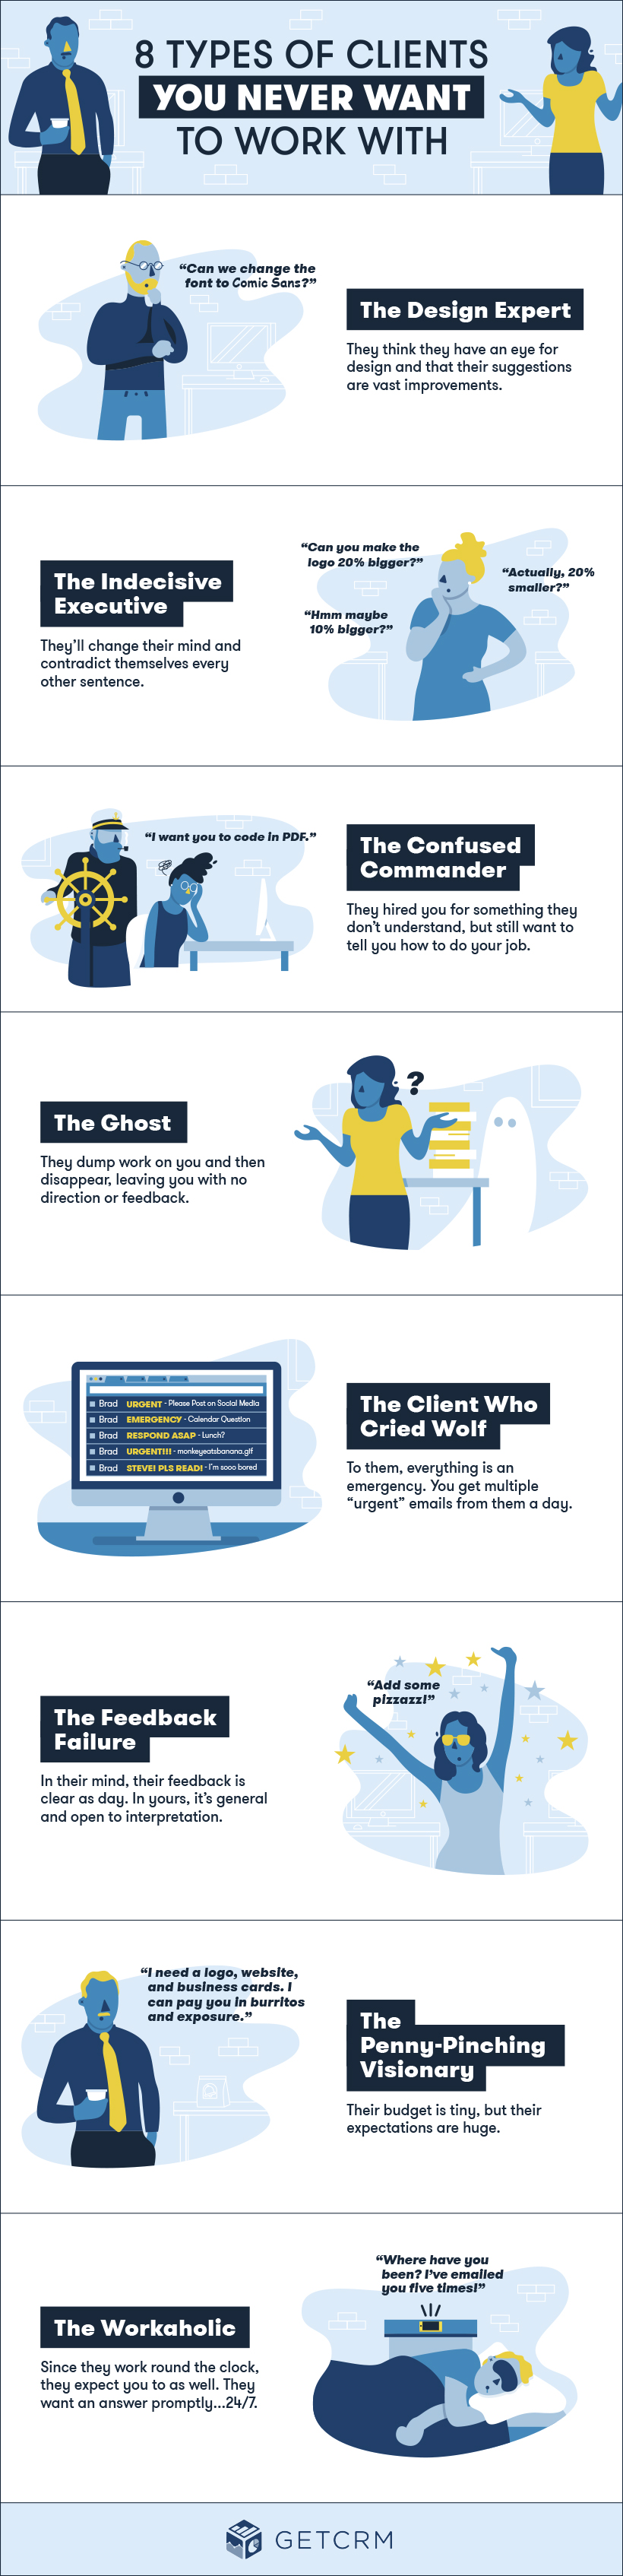 Clients from Hell: 8 Types of Difficult Clients - Infographic